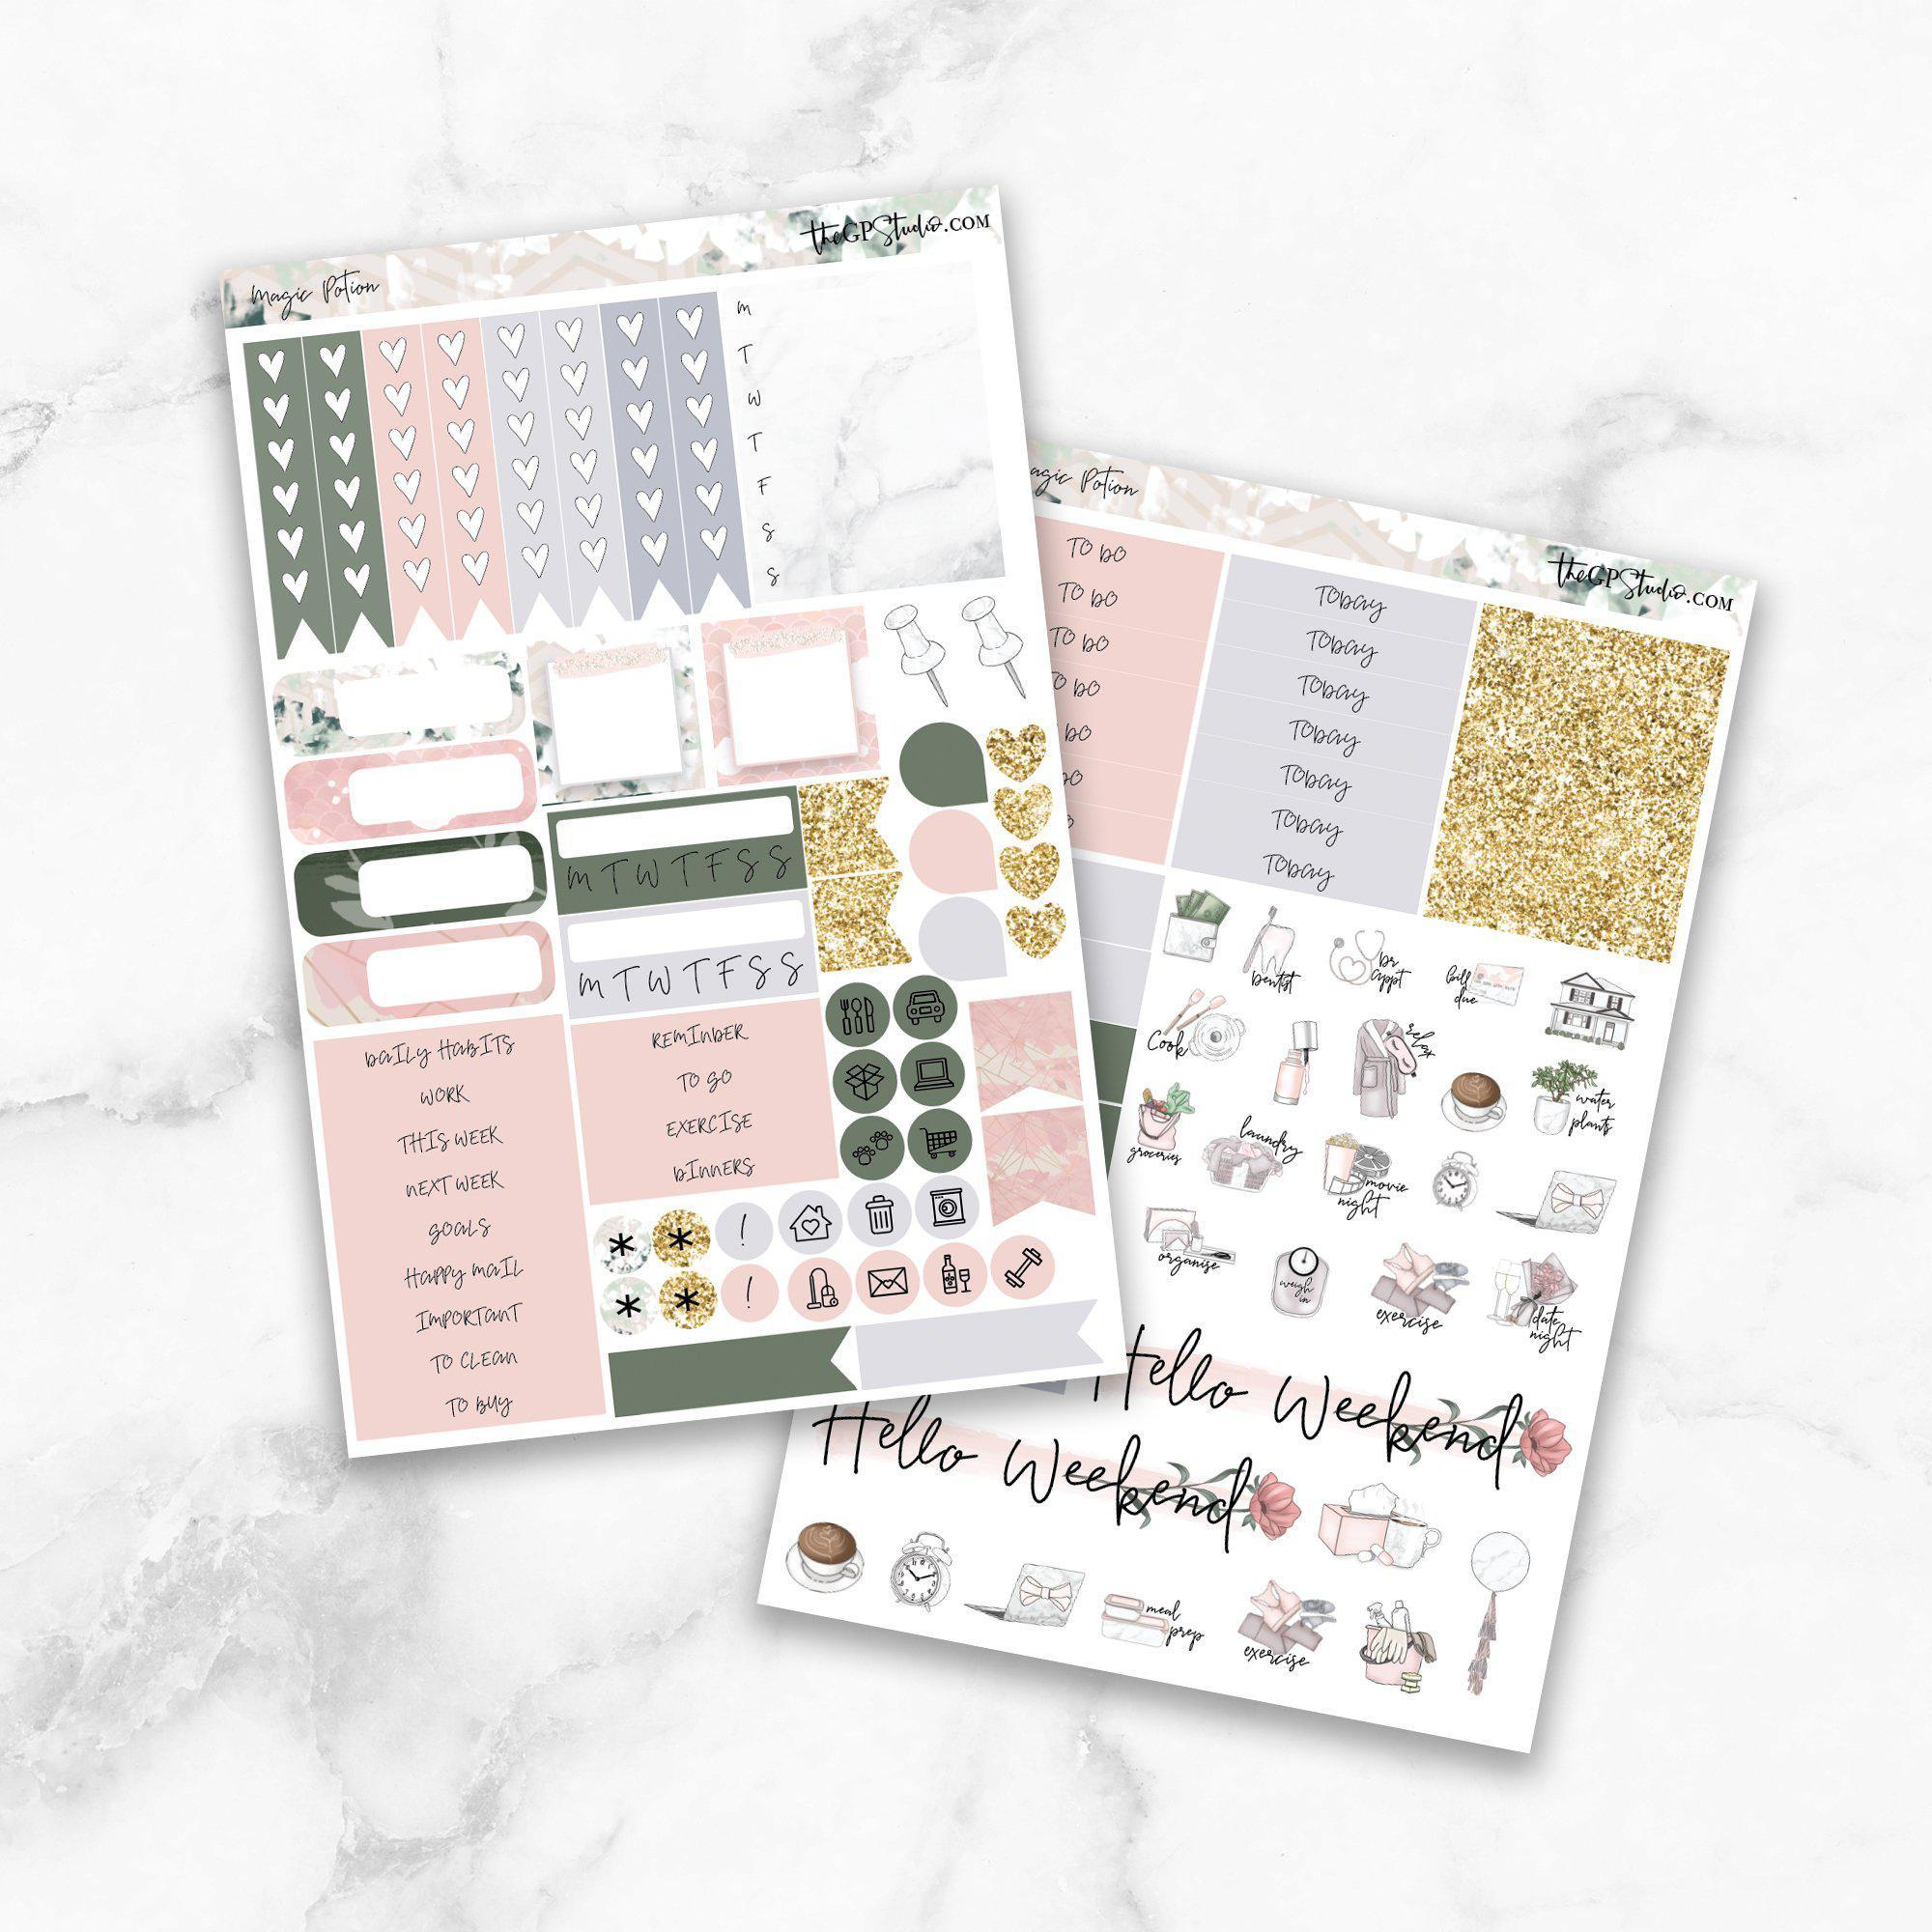 MAGIC POTION Functional Planner Sticker Kit-The GP Studio